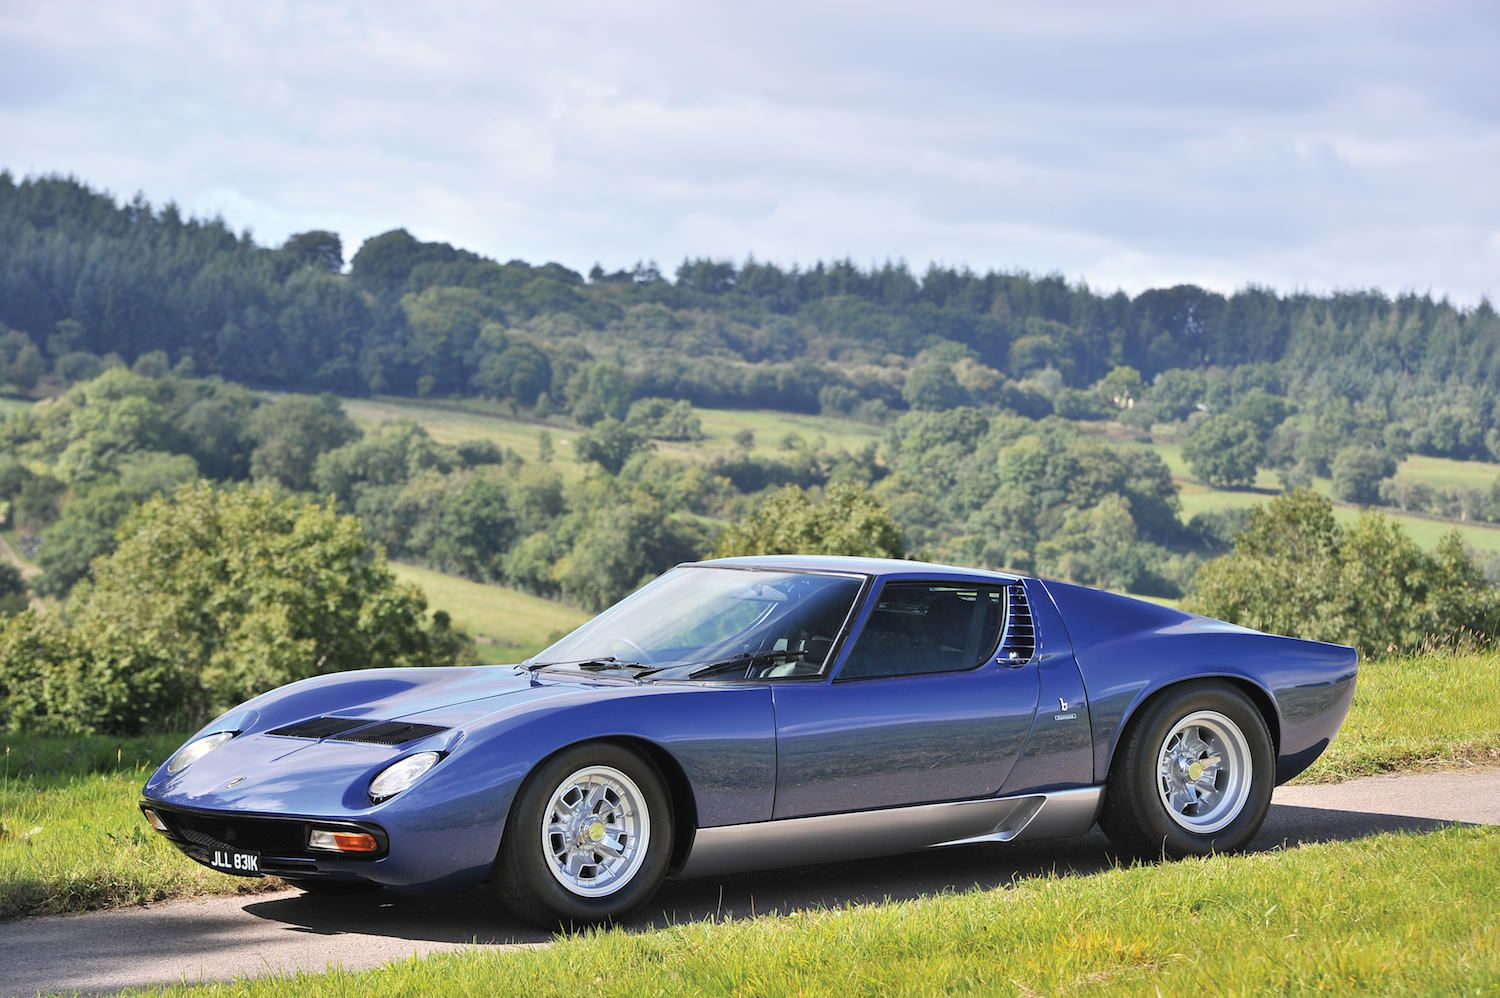 Lamborghini Miura P400 SV | Lamborghini miura, Lamborghini and Cars